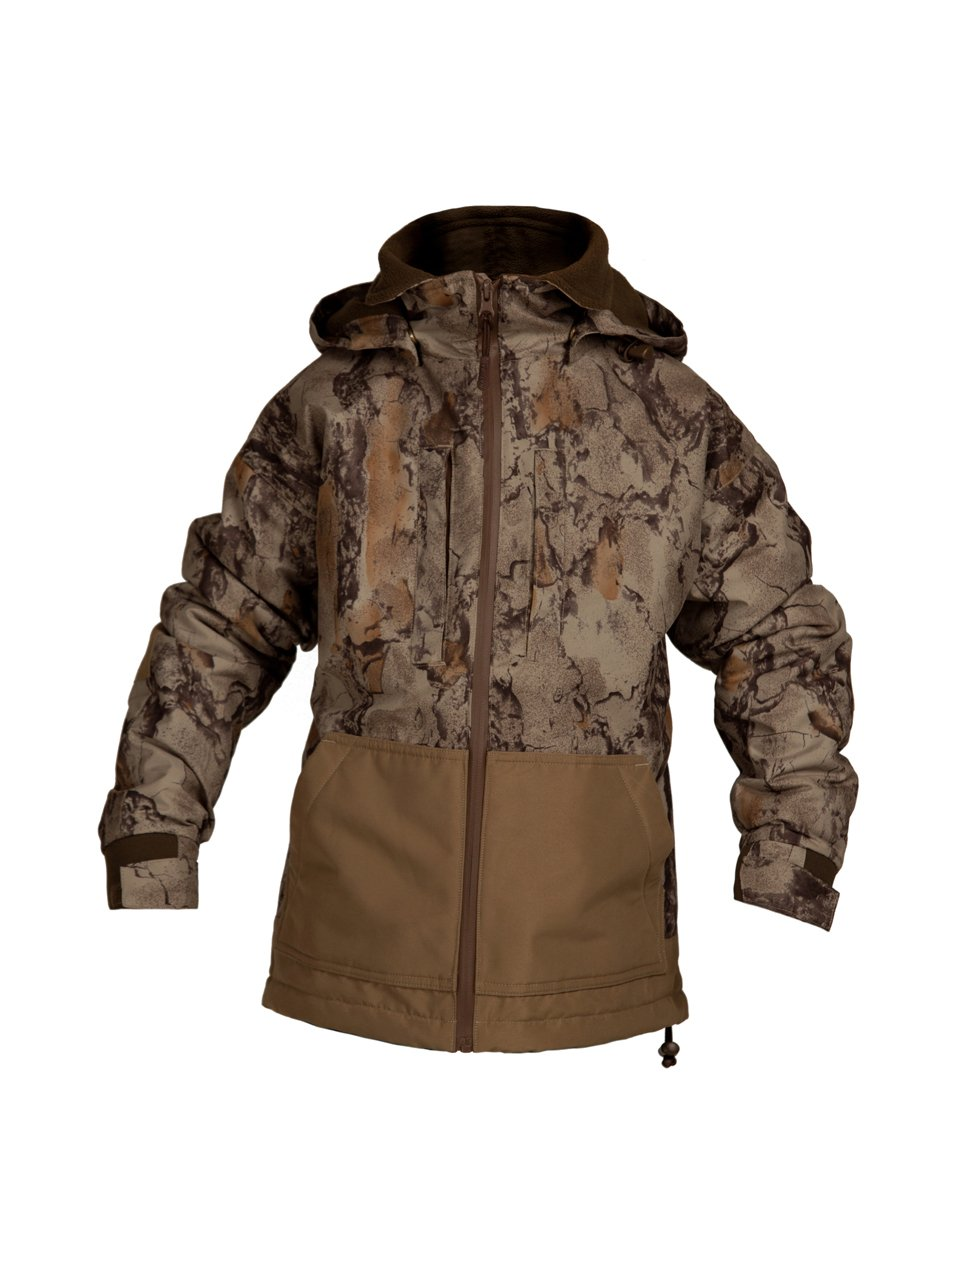 796d2d5ea7675 100% DRI STALK RIGID SHELL MATERIAL: Our Natural Gear camo waterfowl jacket  is made entirely of Dri Stalk material, making it windproof and waterproof.